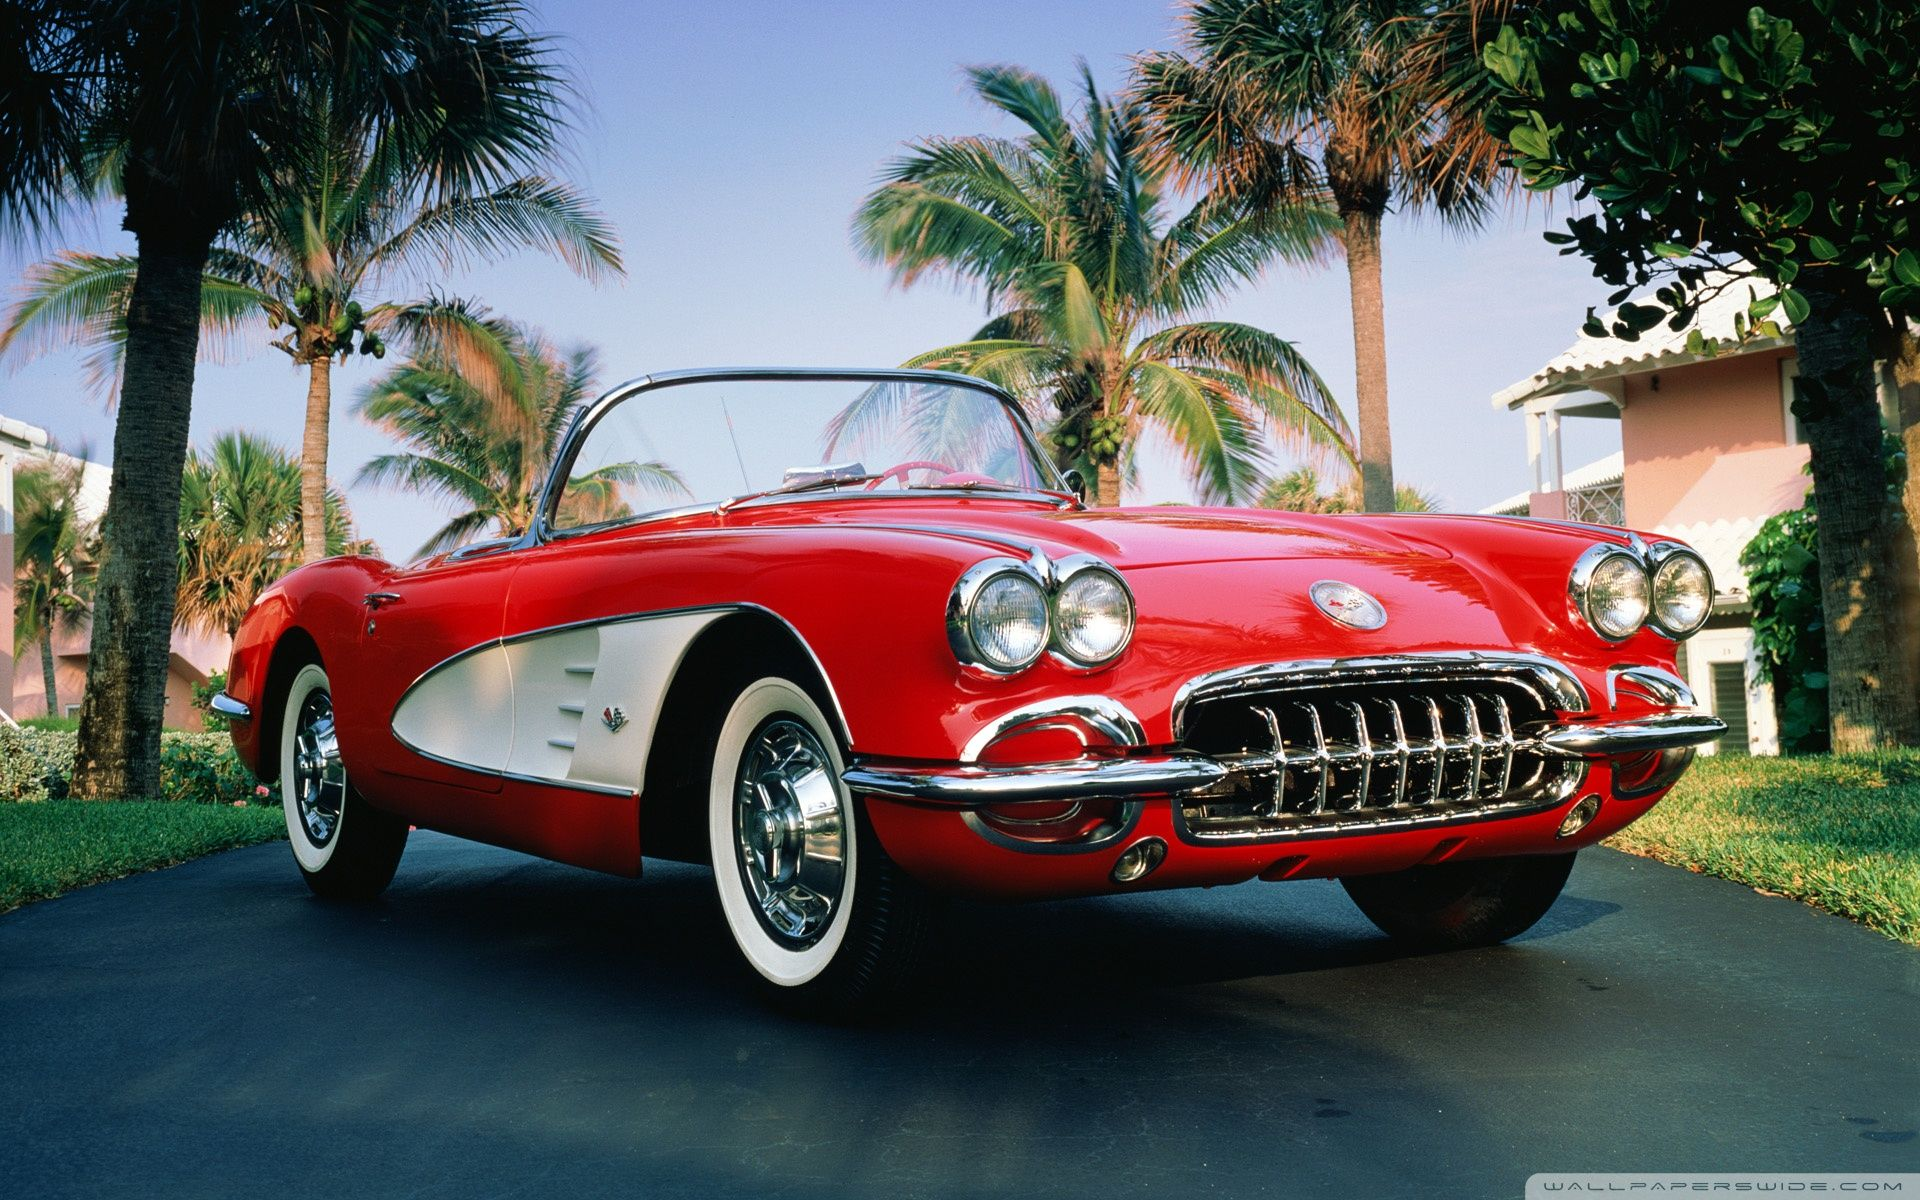 60s Cars Wallpapers Top Free 60s Cars Backgrounds Wallpaperaccess